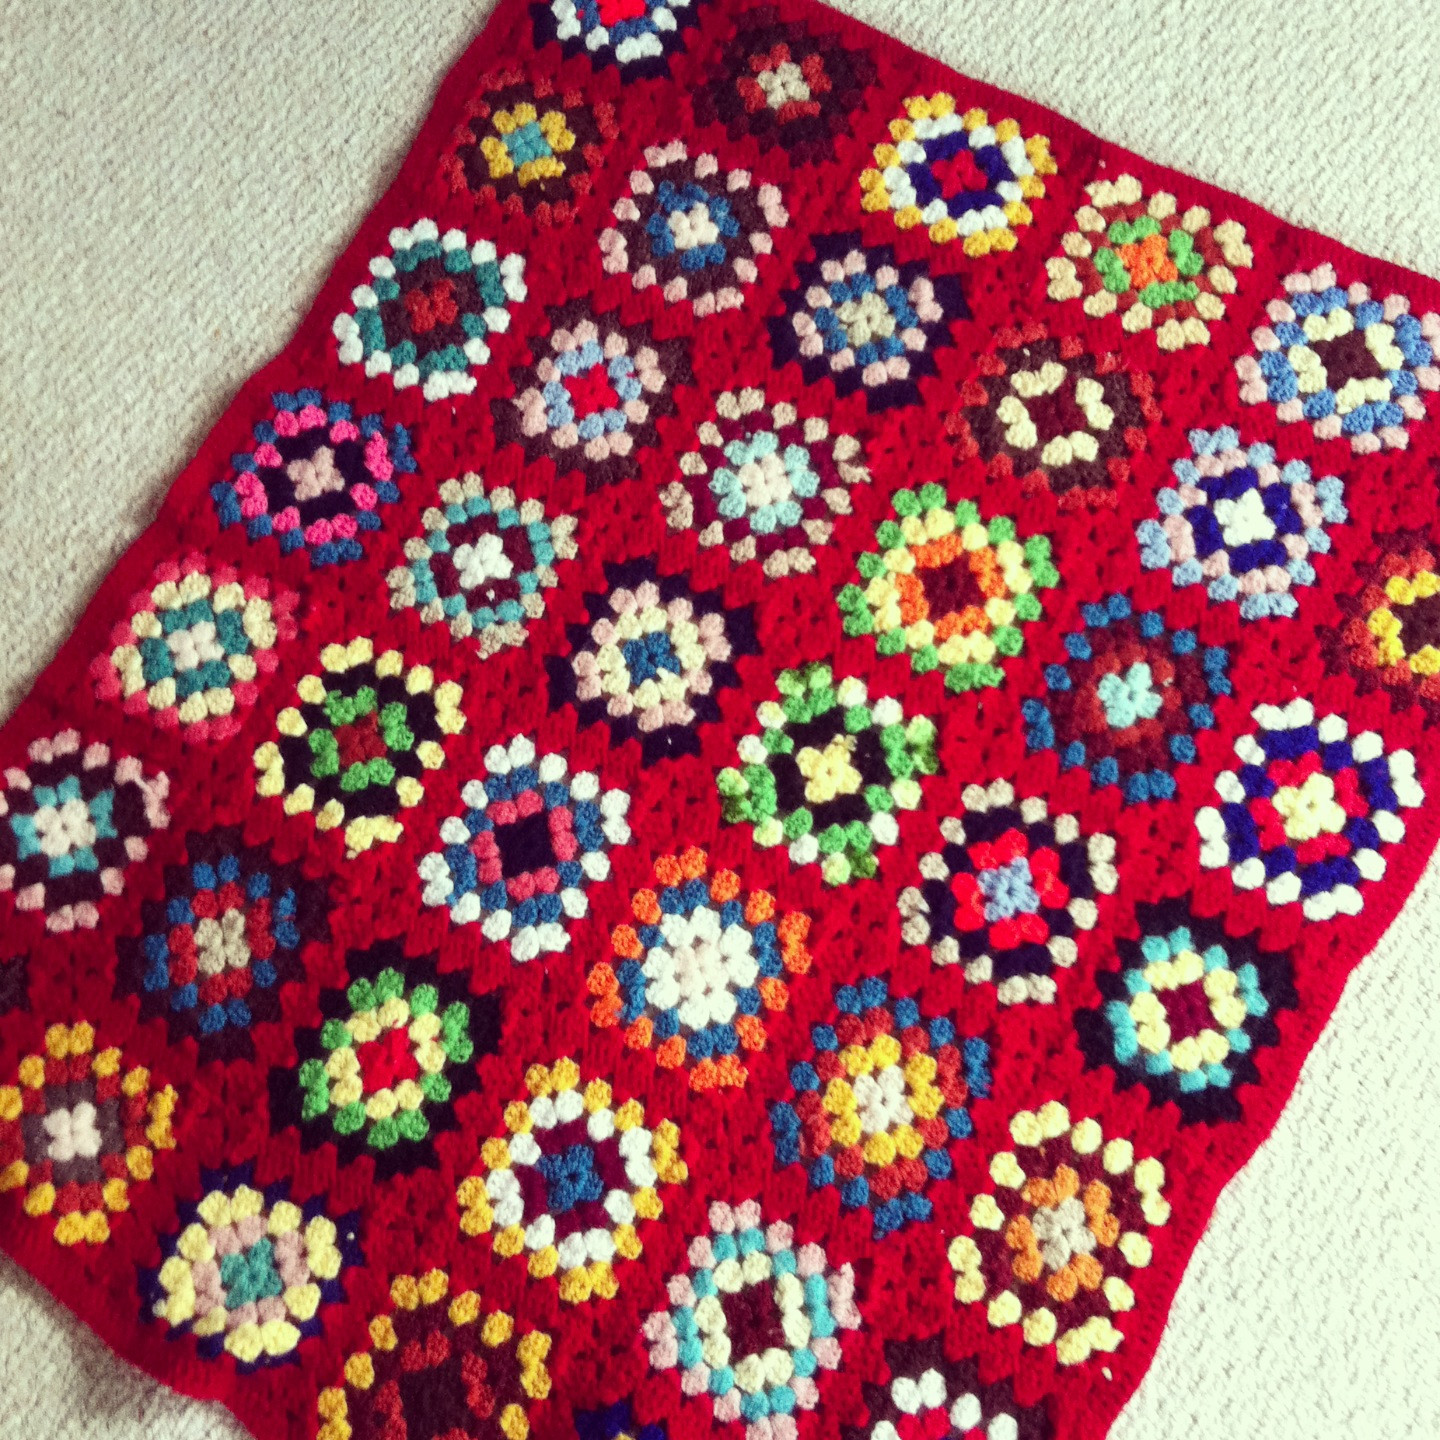 Awesome Vintage Finds Granny Square Crochet Afghans Hello Crochet Granny Square Afghan Of Beautiful 46 Pictures Crochet Granny Square Afghan